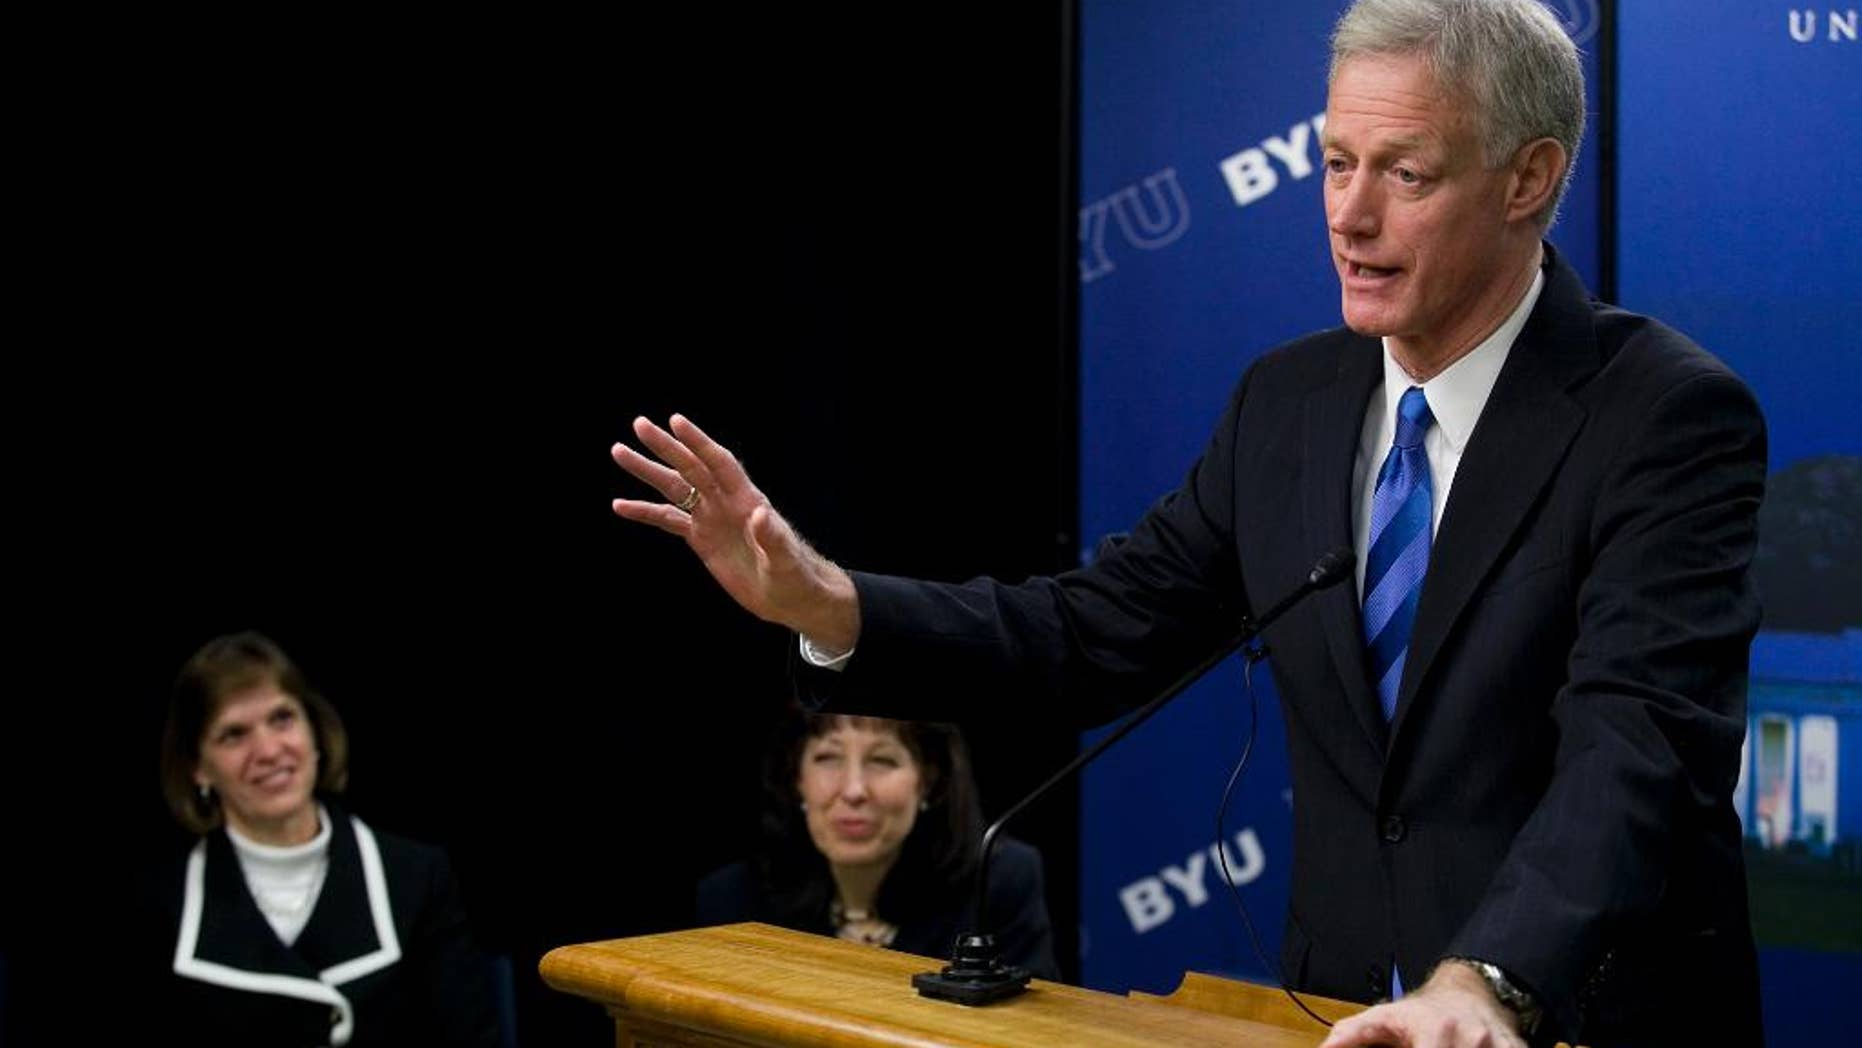 FILE - This March 11, 2014, file photo, Kevin Worthen, the newly-appointed president of Brigham Young University, speaks during a news conference, in Provo, Utah. Worthen says a faculty advisory council created to review how the school handles reports of sexual assault will present its findings this fall. The Daily Herald of Provo reports that Worthen made the comments Monday during a talk to BYU faculty. (Mark Johnston/The Daily Herald via AP)